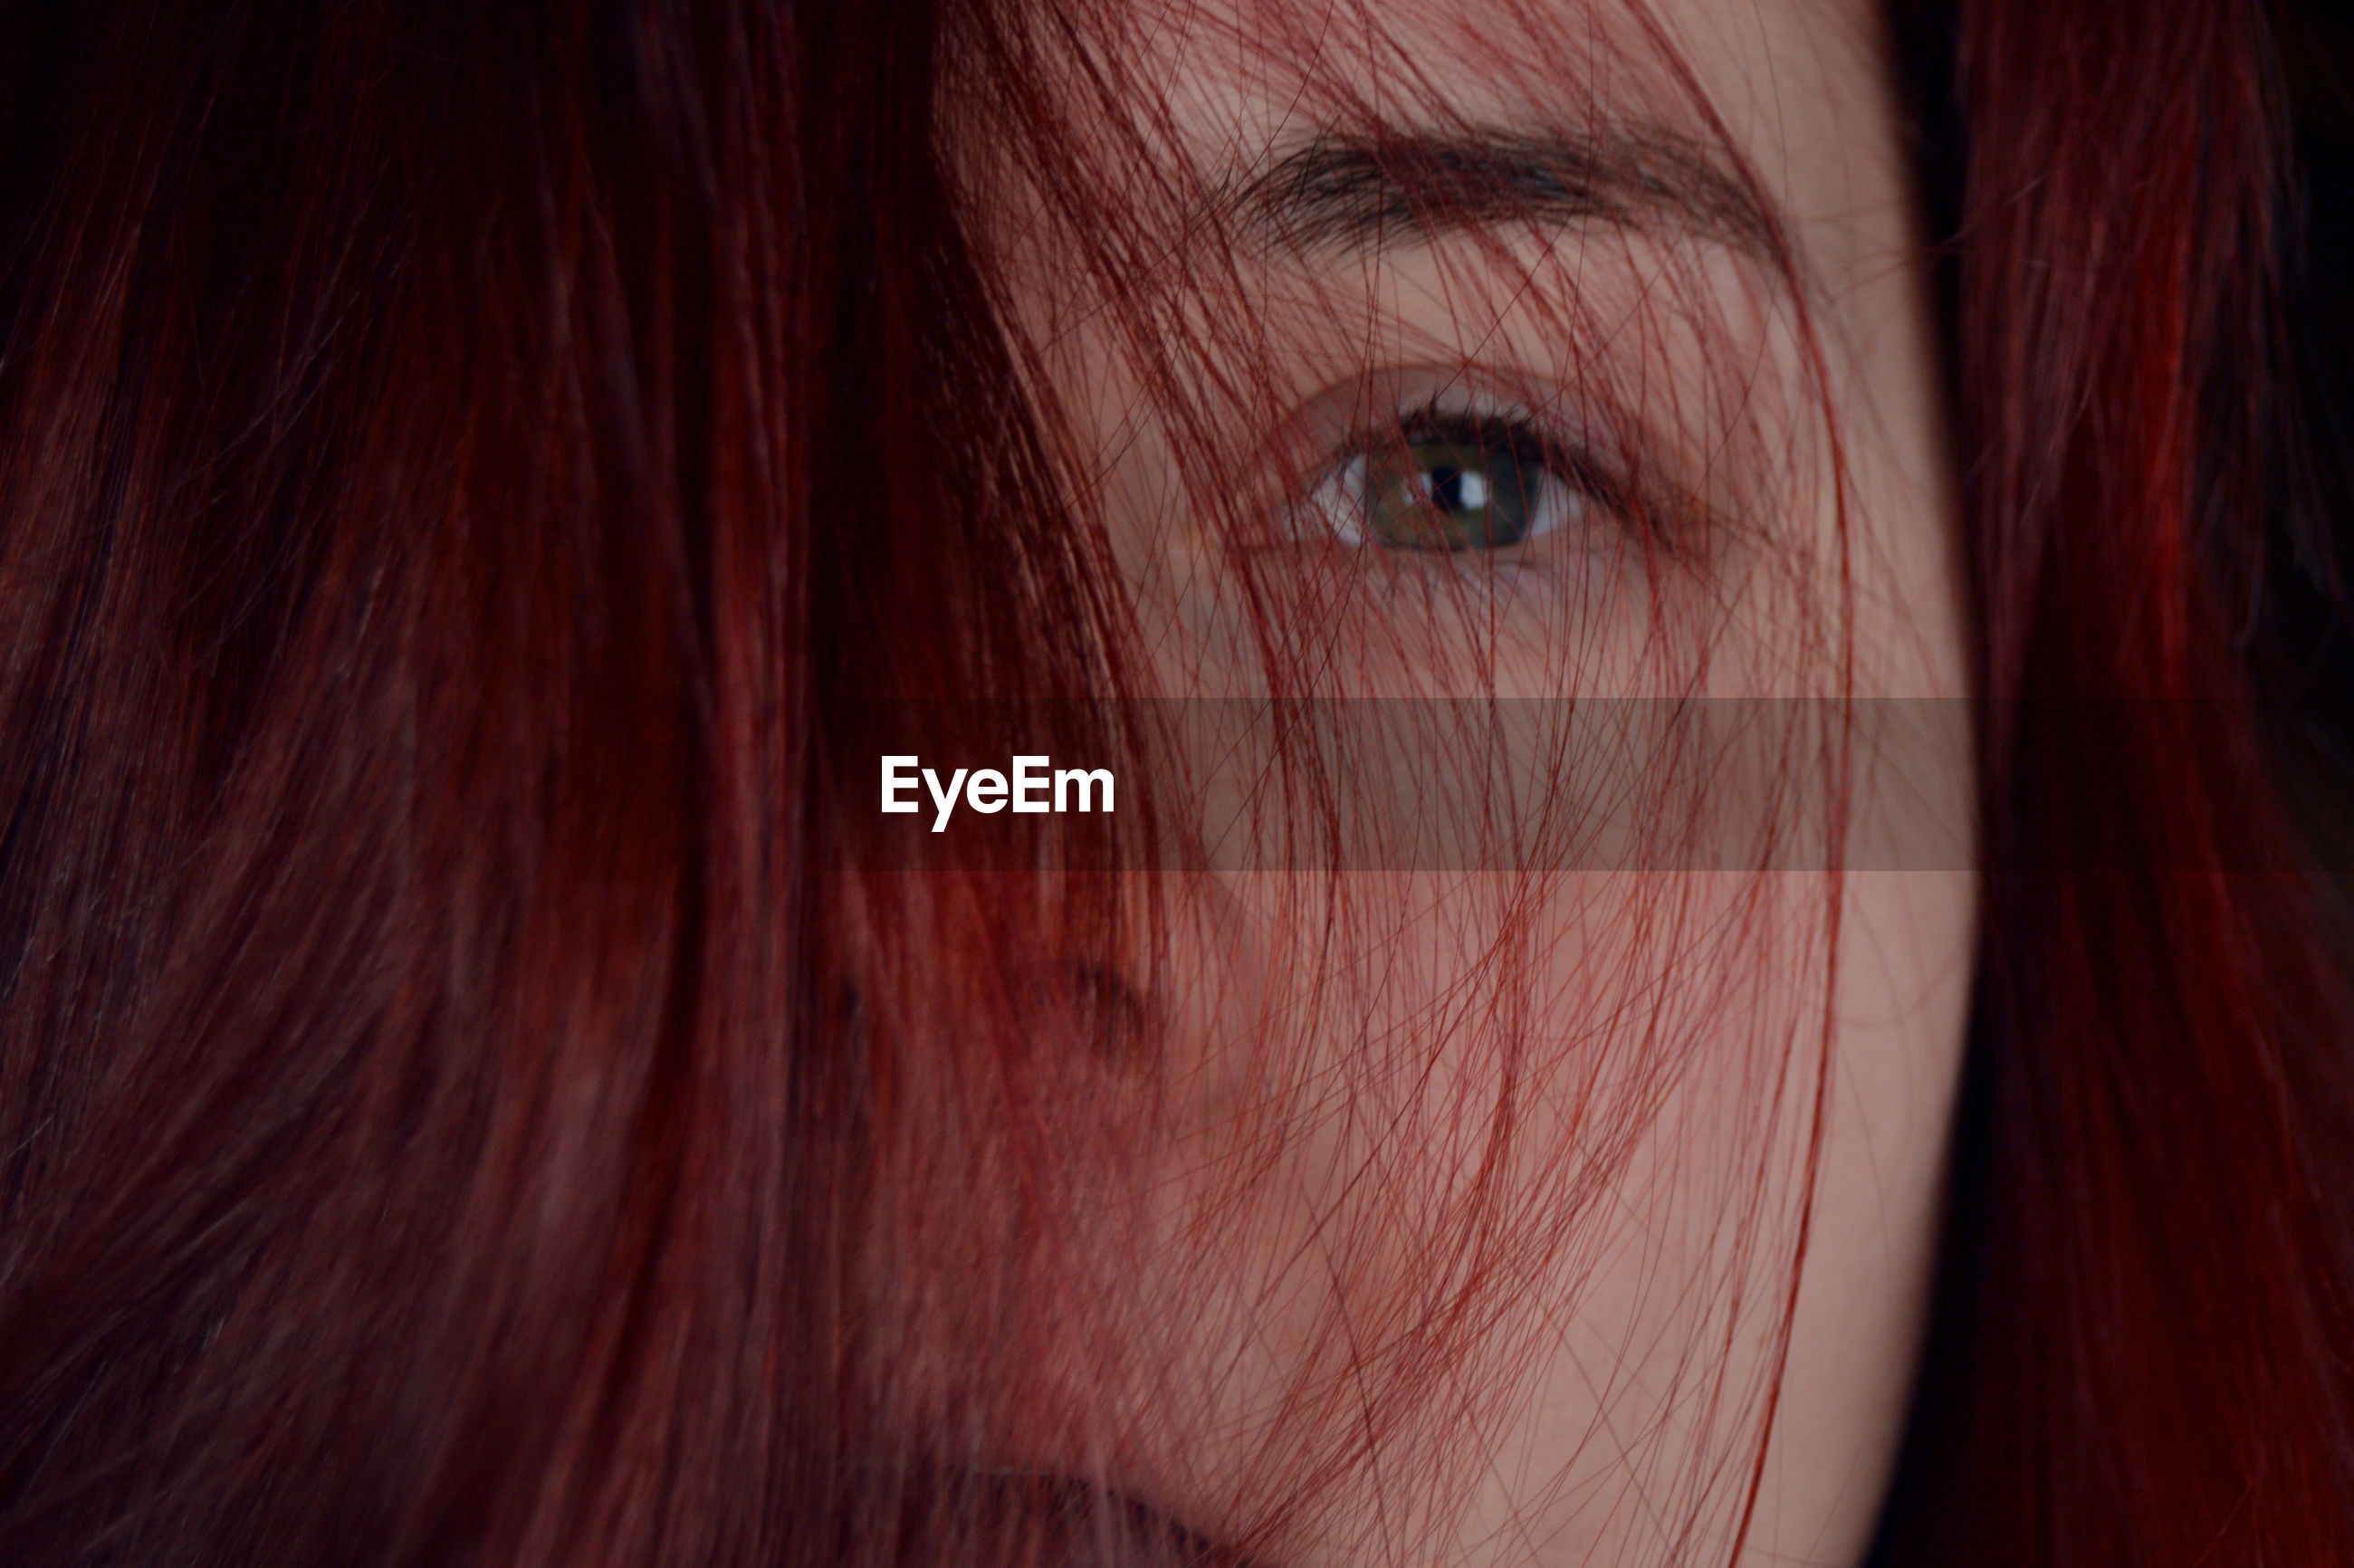 human eye, eye, looking at camera, human face, close-up, one person, beauty, portrait, women, one woman only, adult, human body part, people, adults only